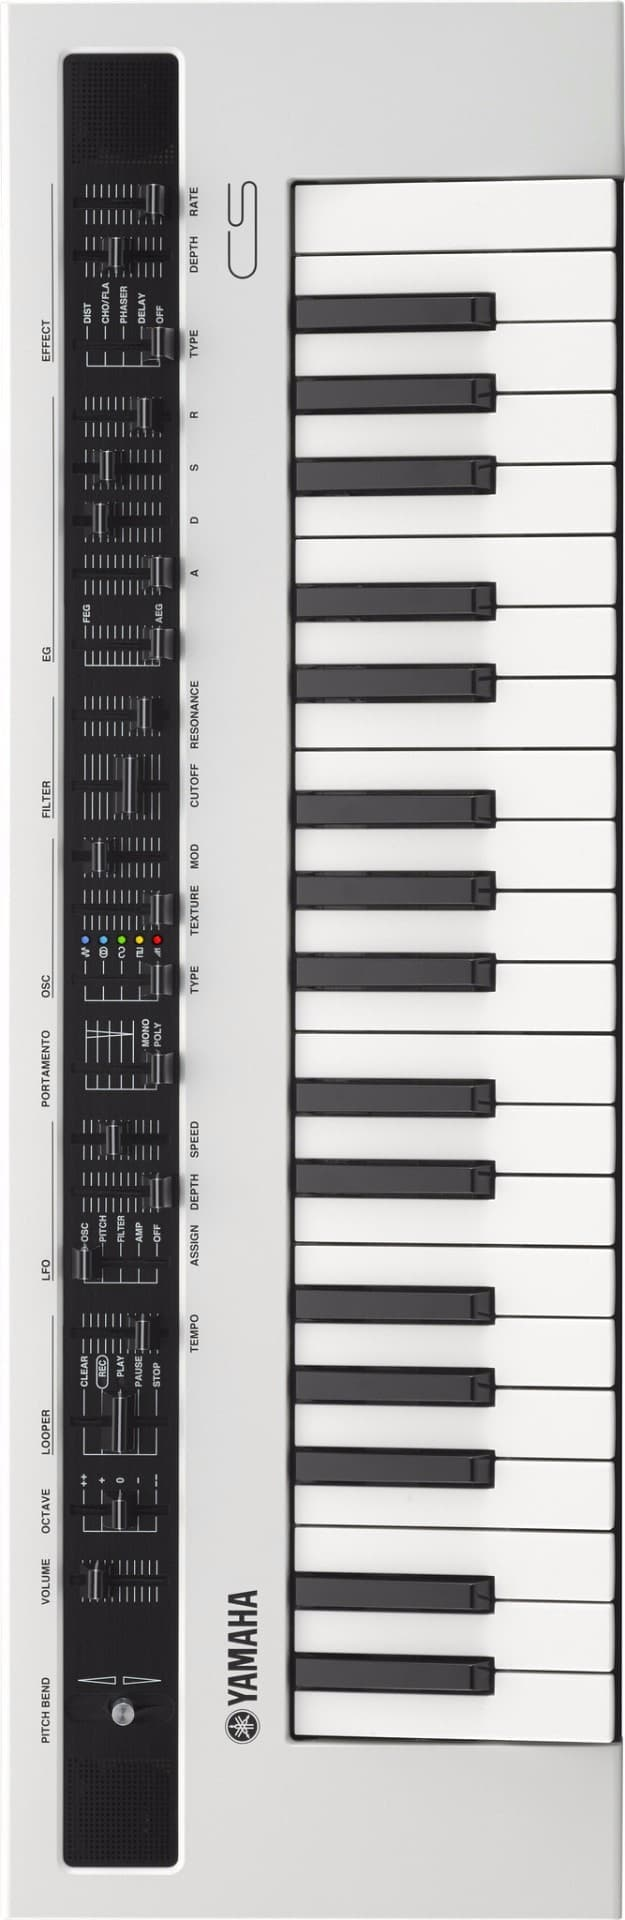 Pa C Or An Equivalent Recommended By Yamaha